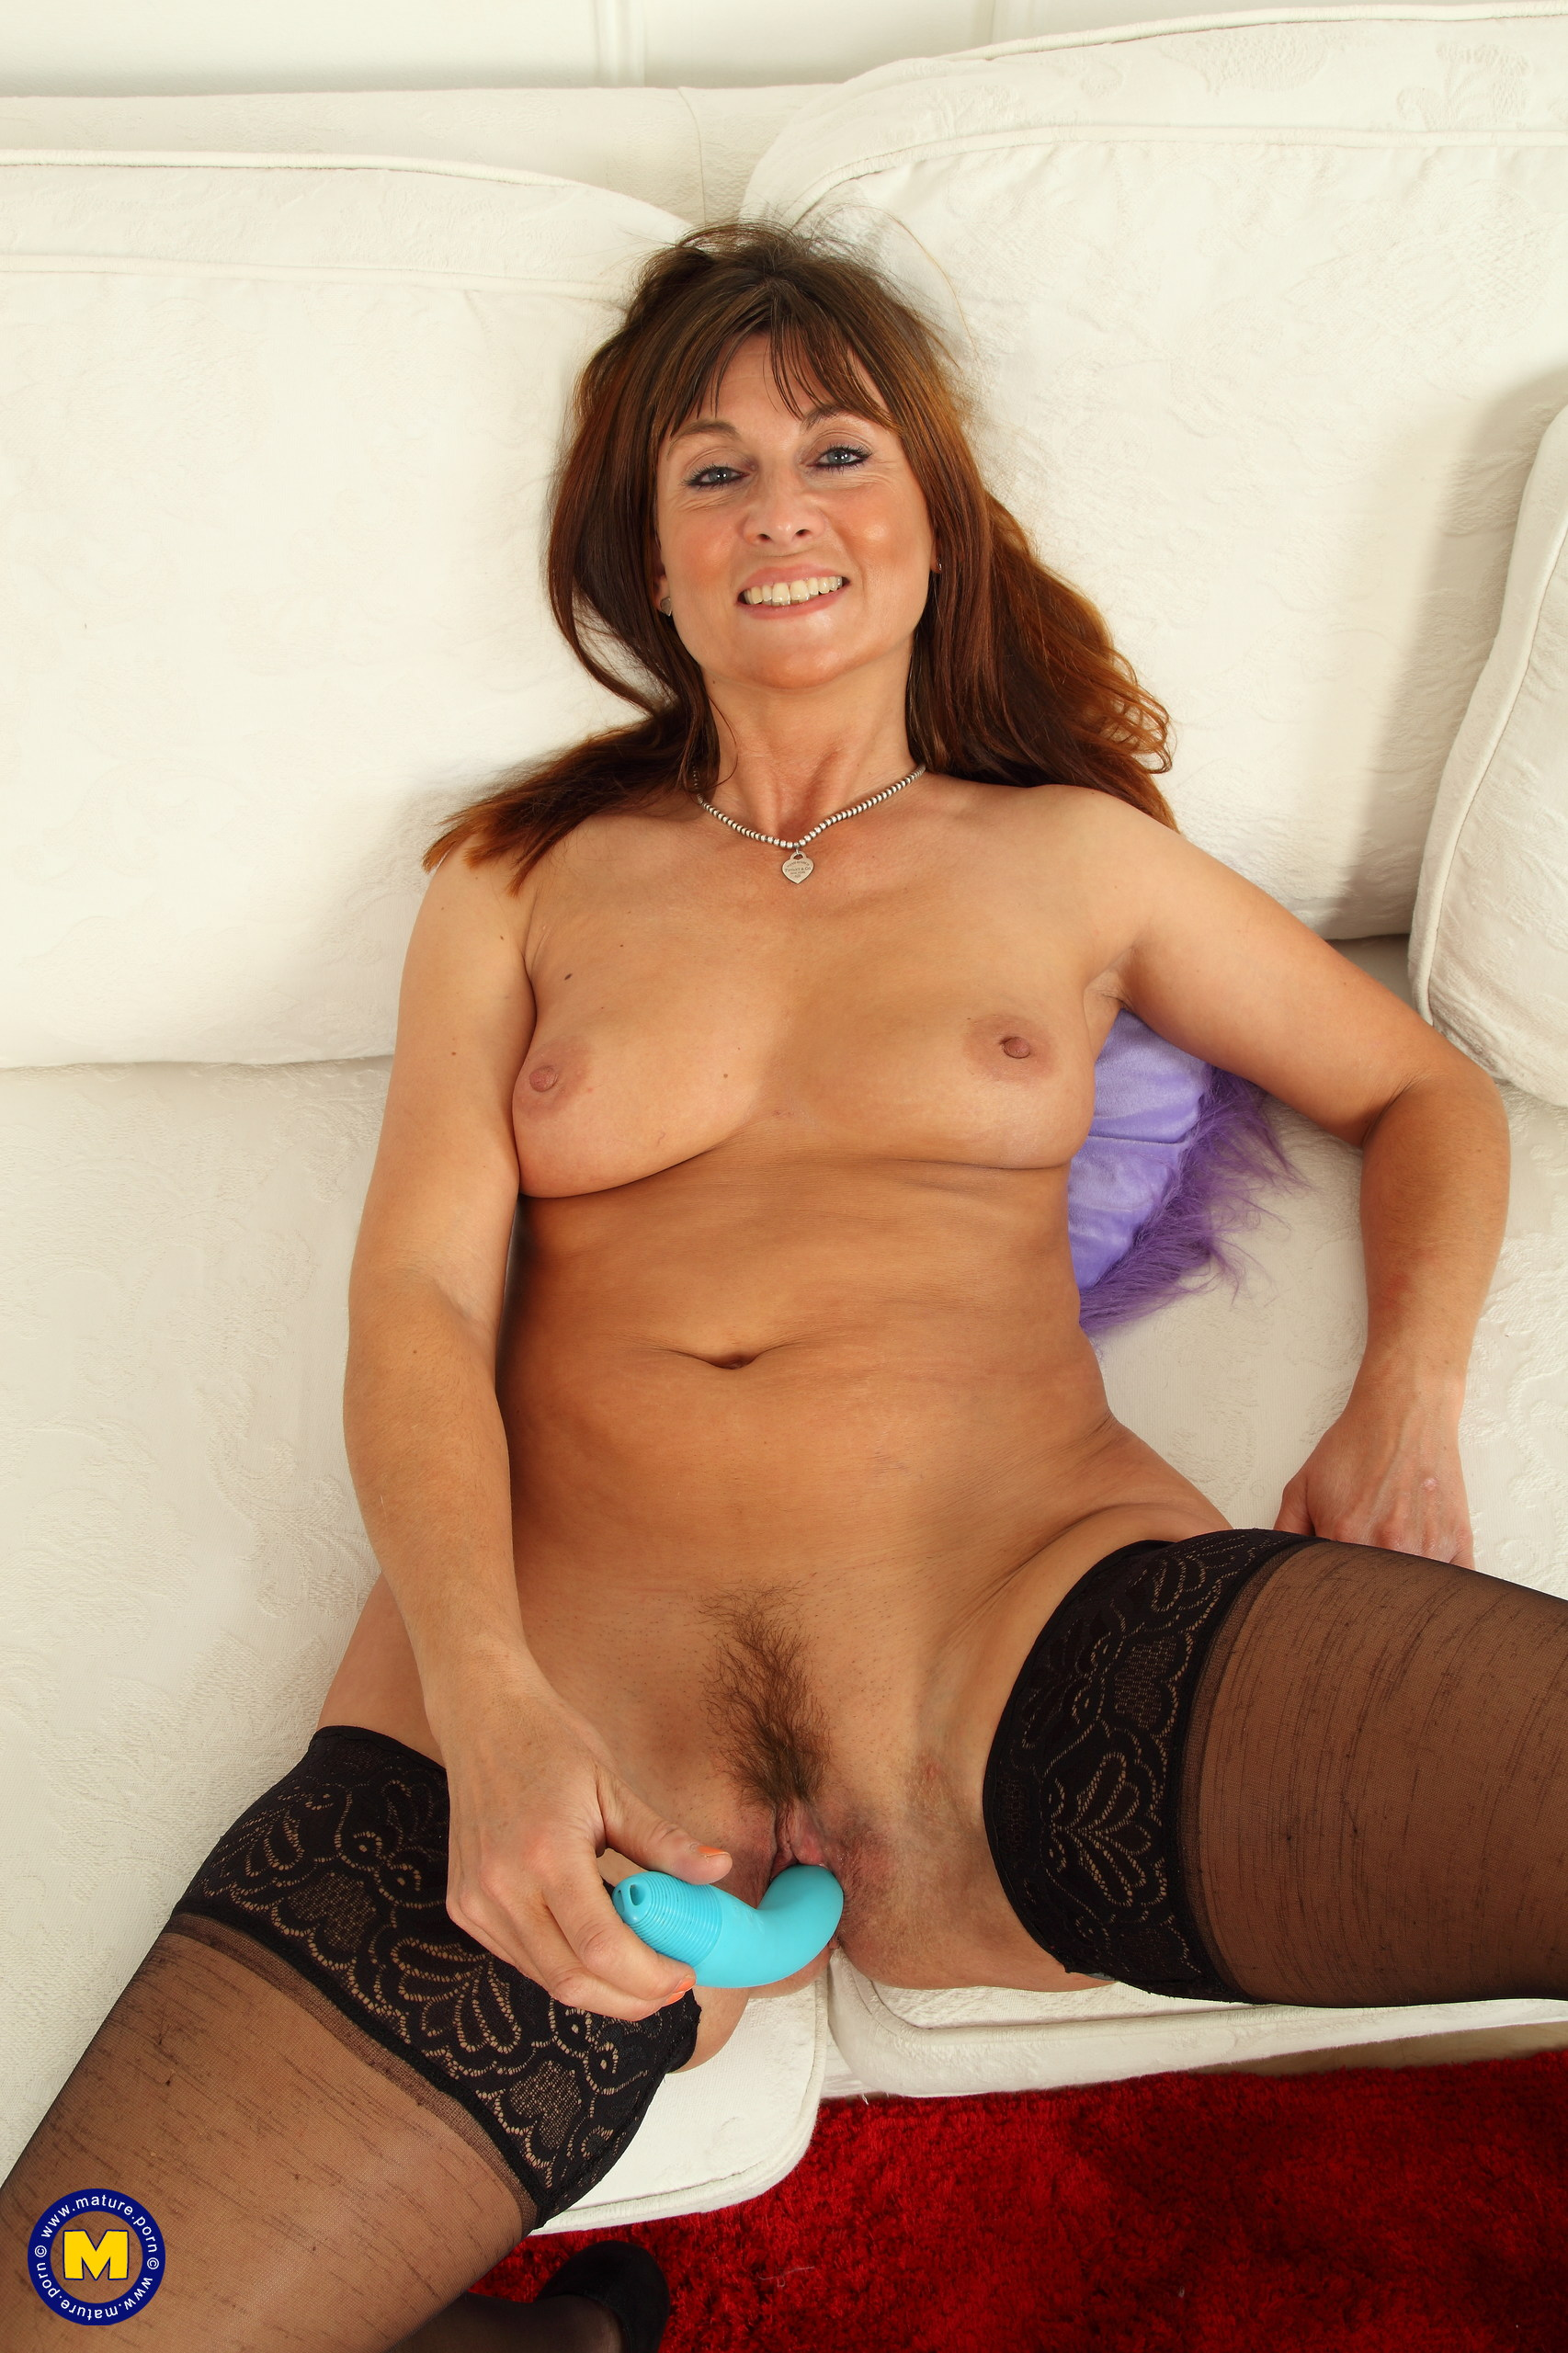 free hot mom sex video galleries